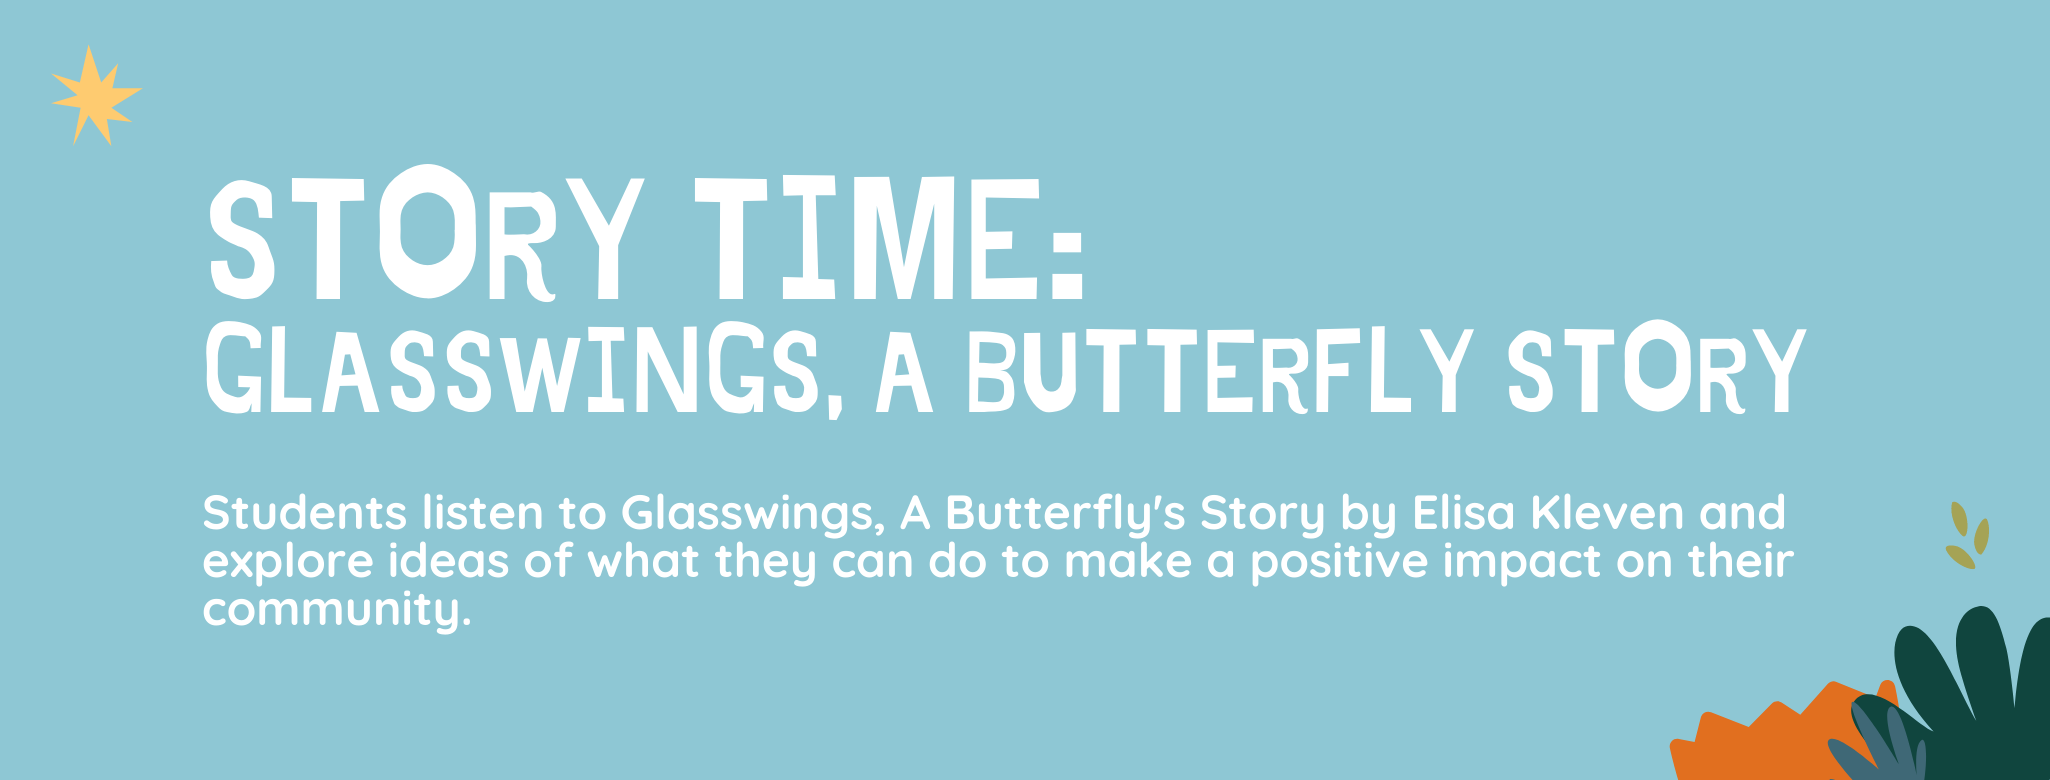 Story Time: Glasswings, A Butterfly Story